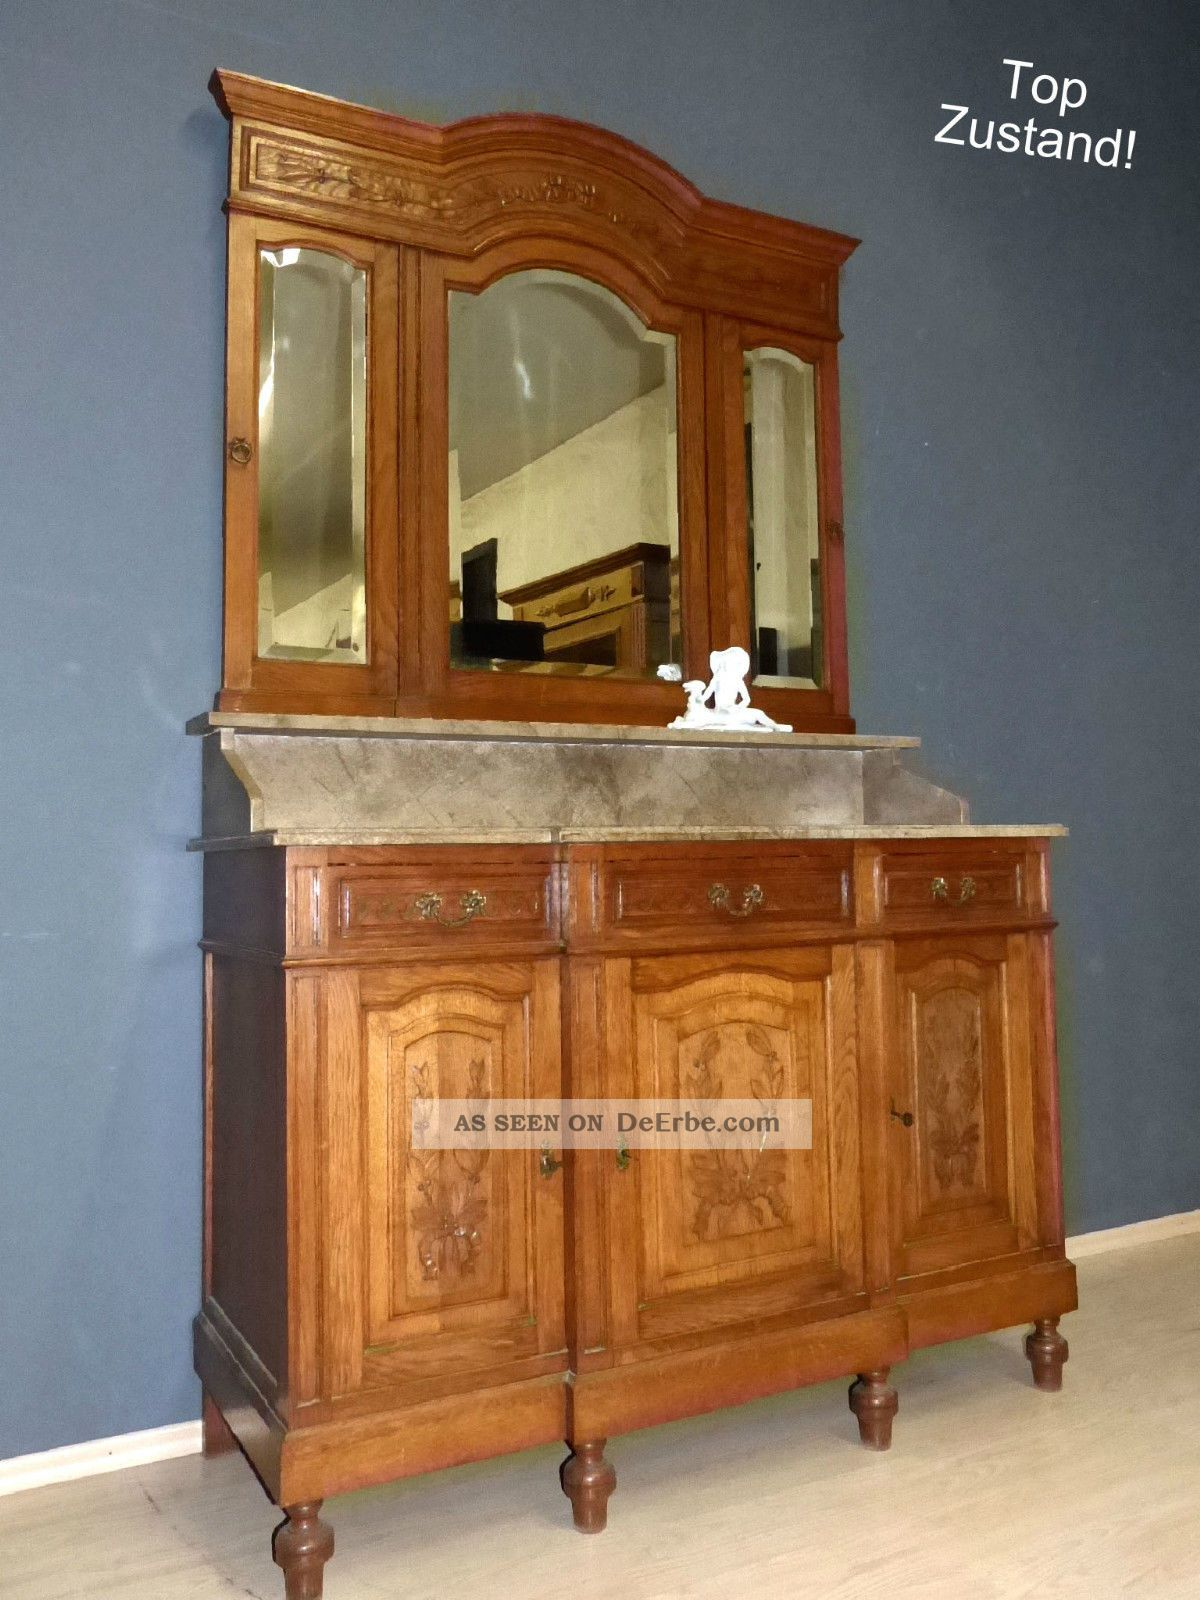 xl jugendstil spiegelkommode wien kommode spiegel antik waschtisch eiche schrank. Black Bedroom Furniture Sets. Home Design Ideas